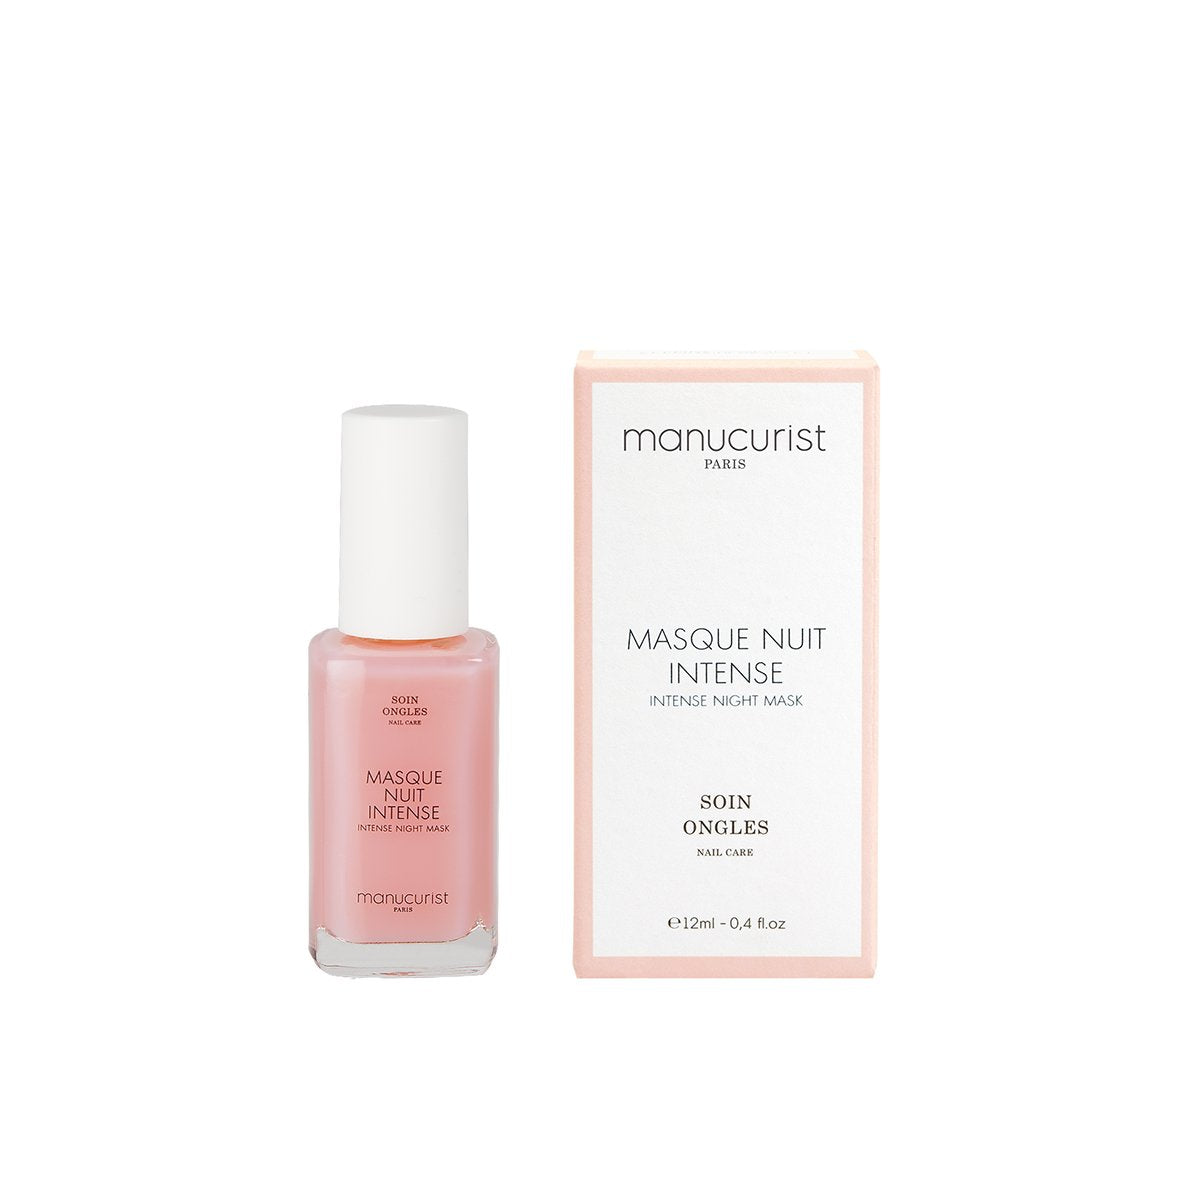 MANUCURIST PARIS intense night mask